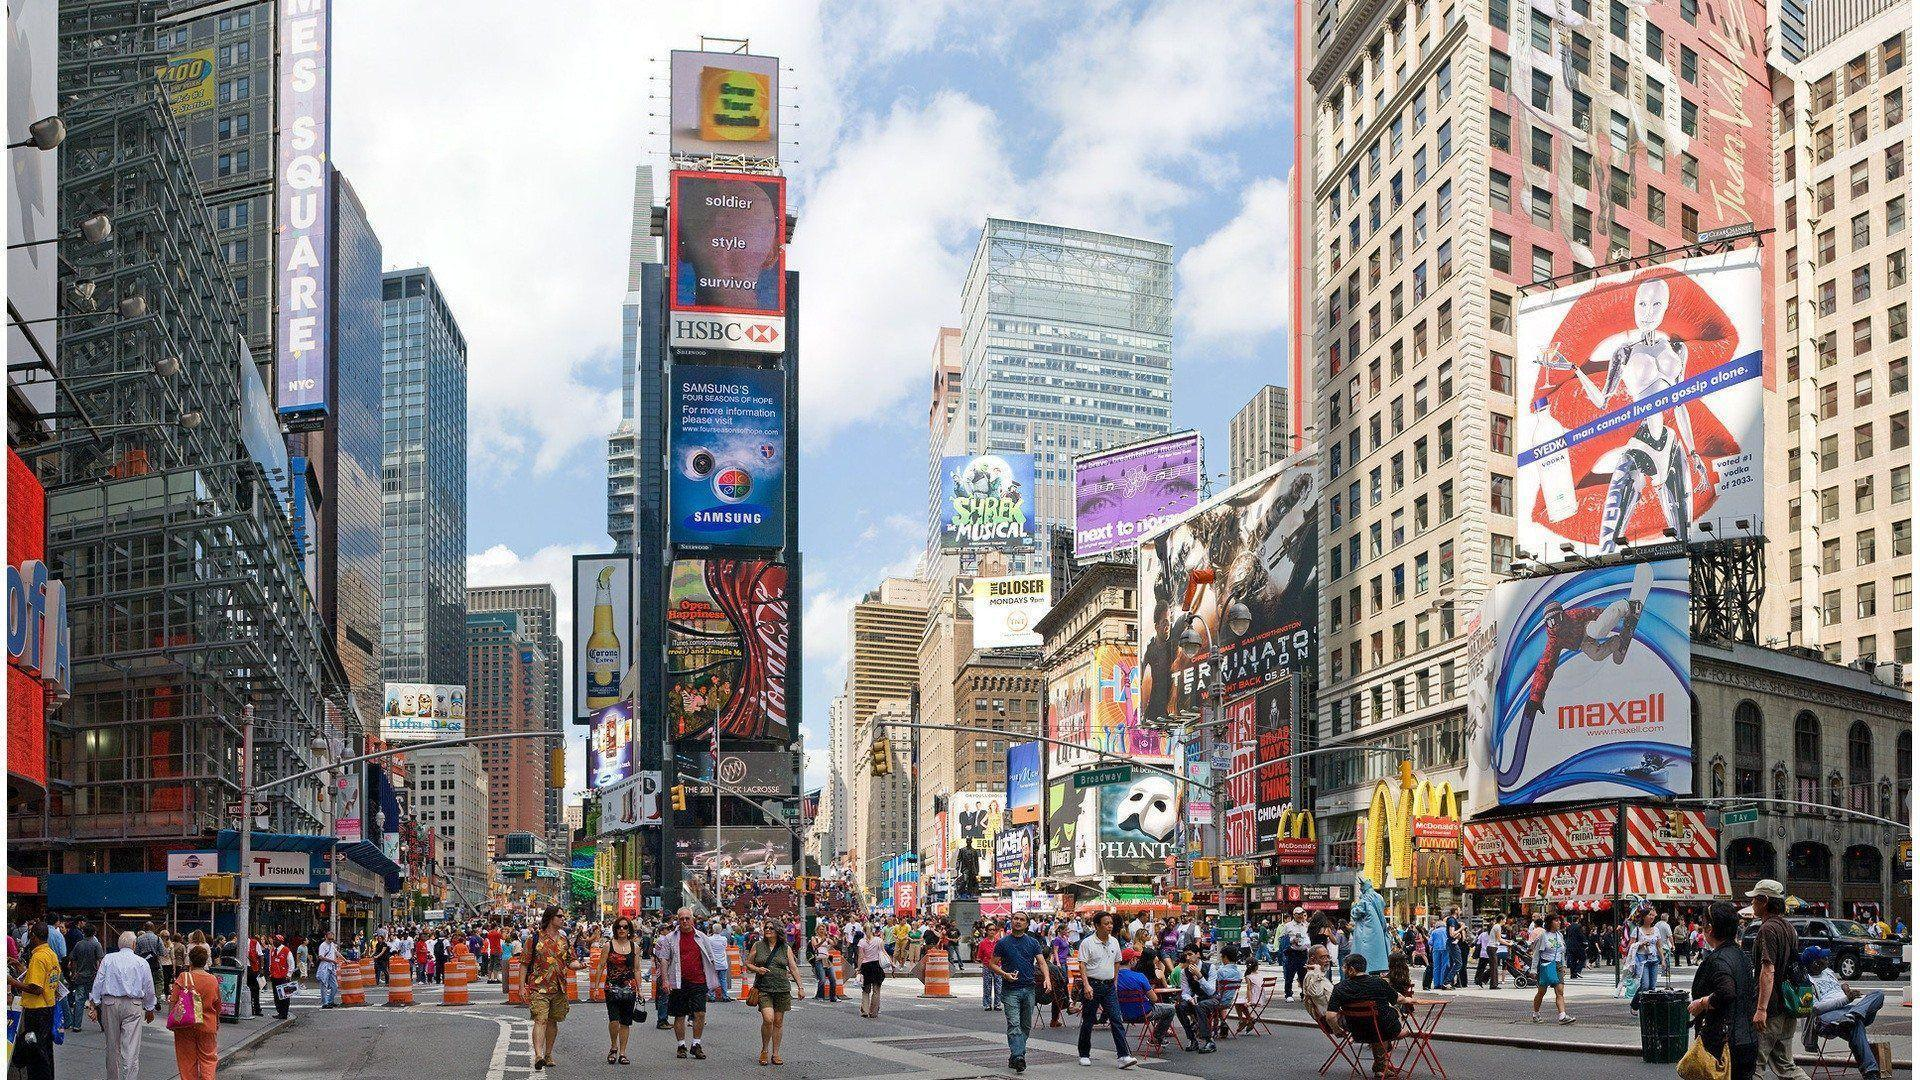 Times Square Wallpaper At Night Wallpaper | 4Wlp